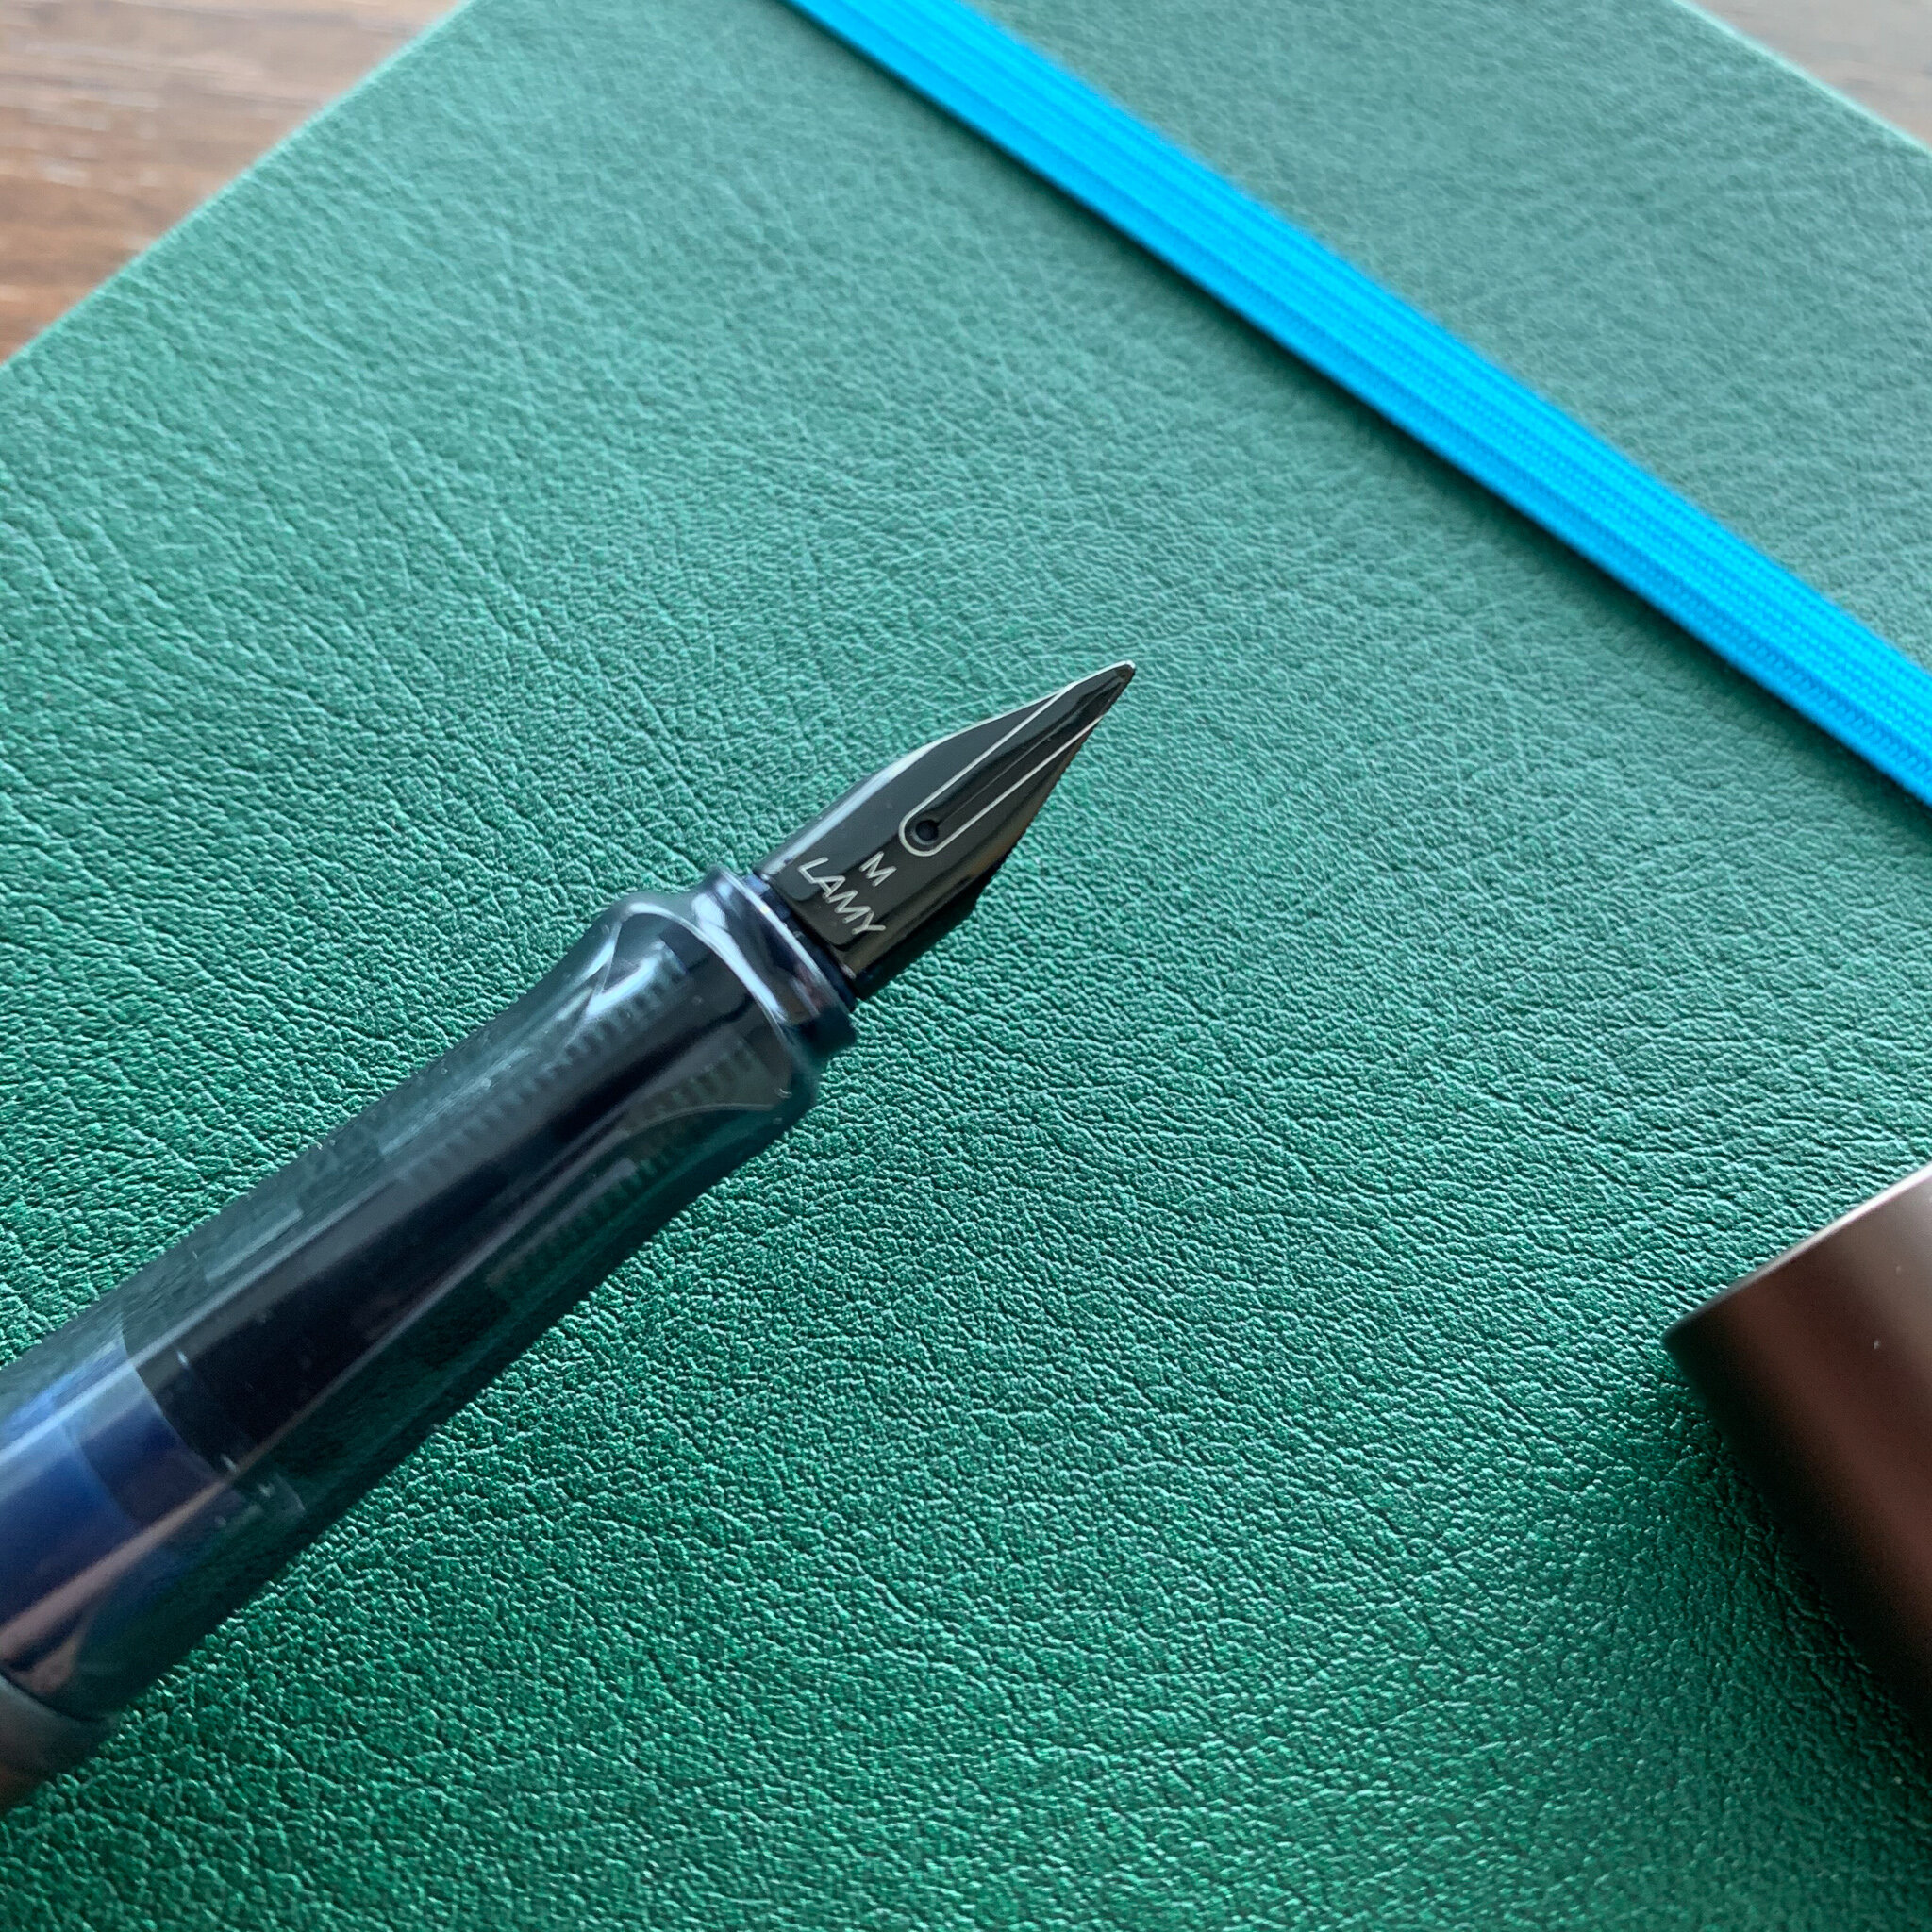 Apart from the special colors, the only real difference in terms of hardware between the Lamy AL-Star and the Lamy LX is the nib.